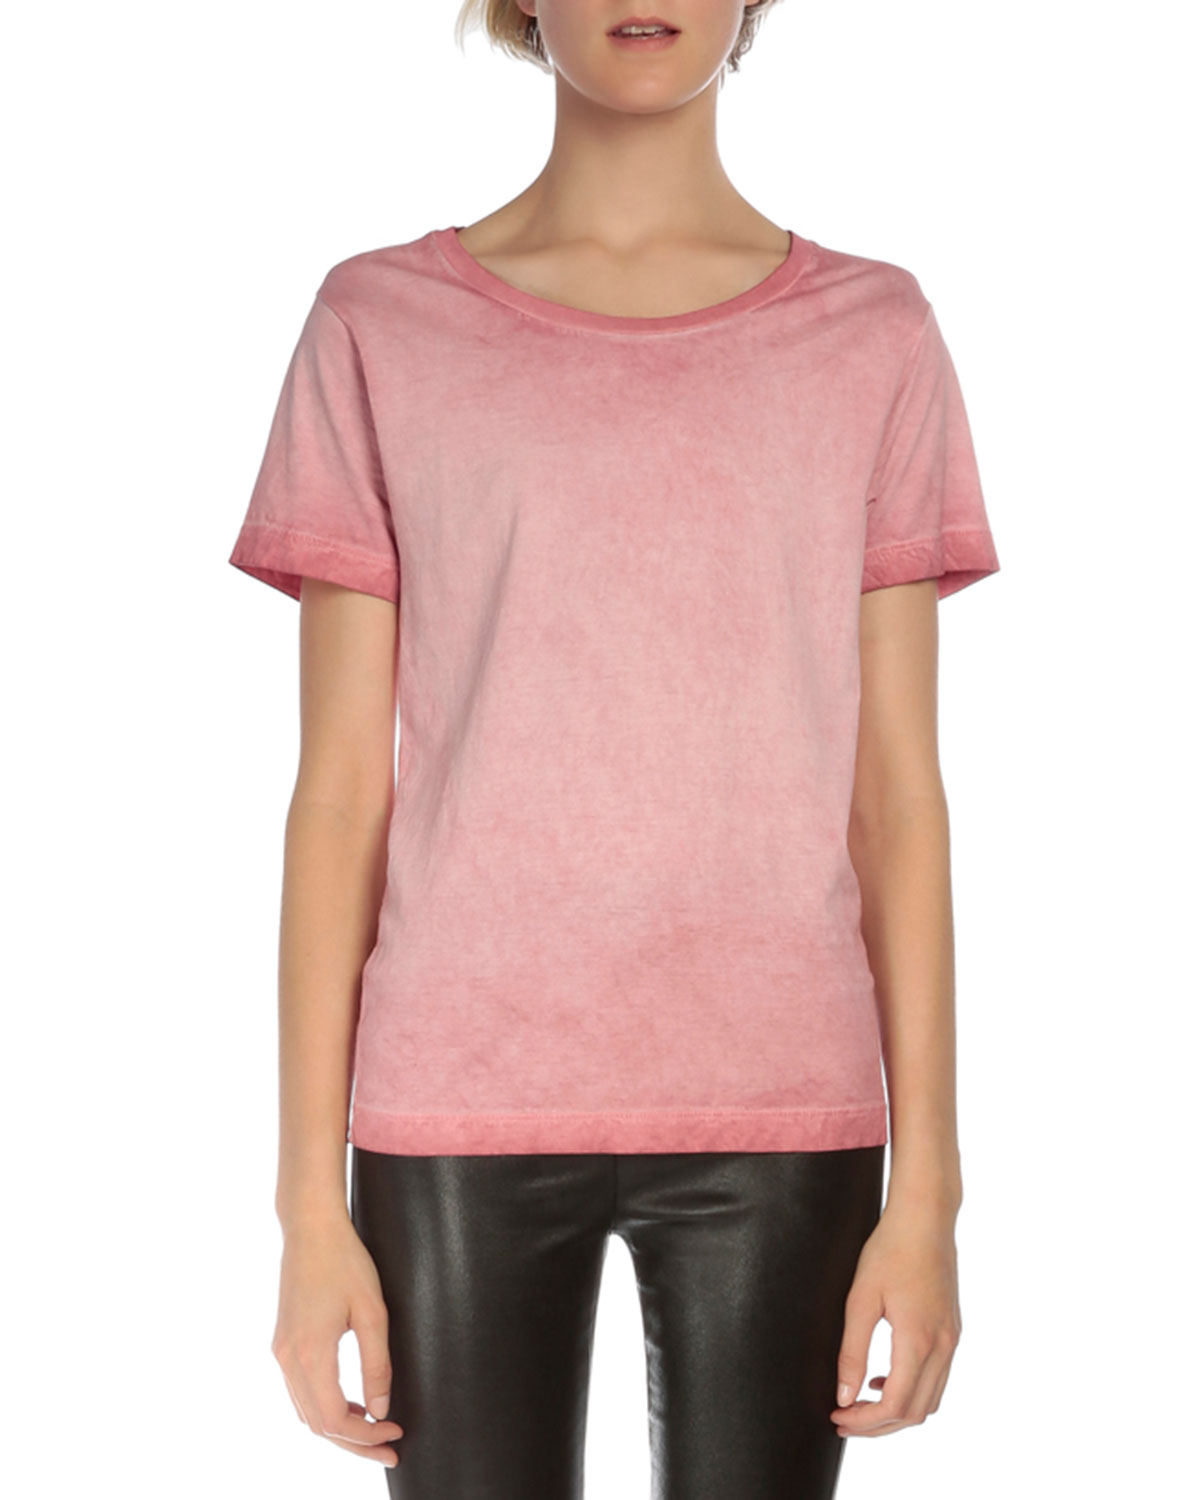 Short-Sleeve Tie-Dye Degrade T-Shirt, Pink